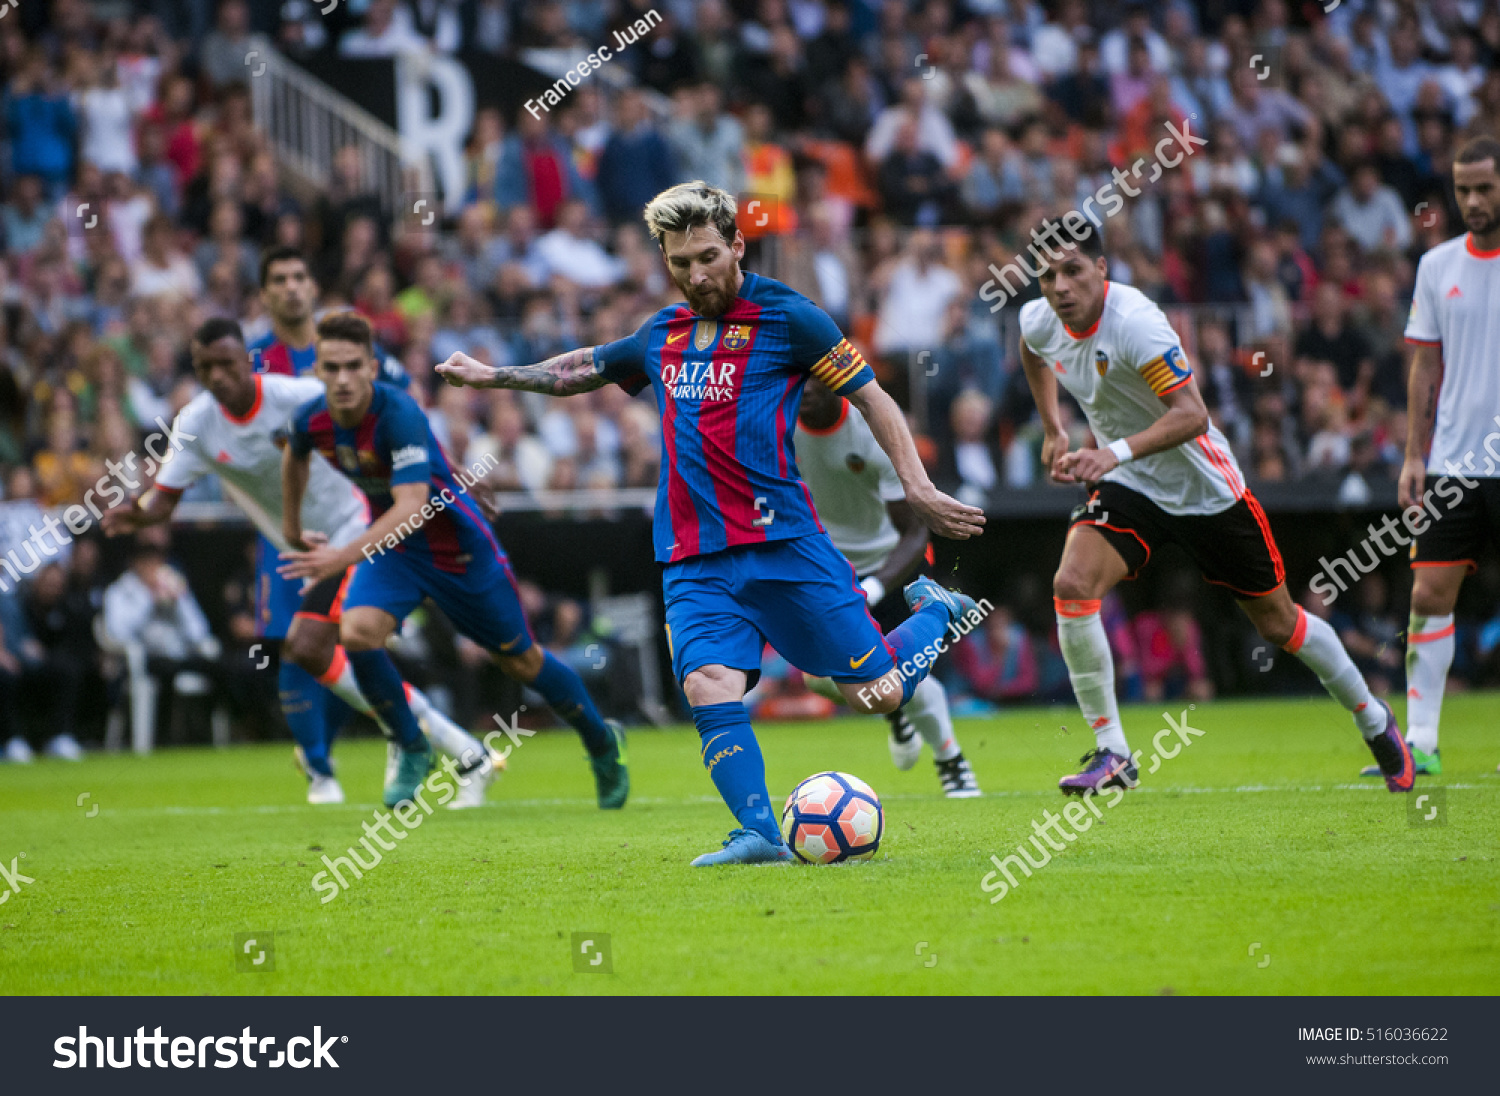 https://image.shutterstock.com/z/stock-photo-valencia-spain-october-messi-penalti-during-bbva-league-match-between-valencia-c-f-and-516036622.jpg